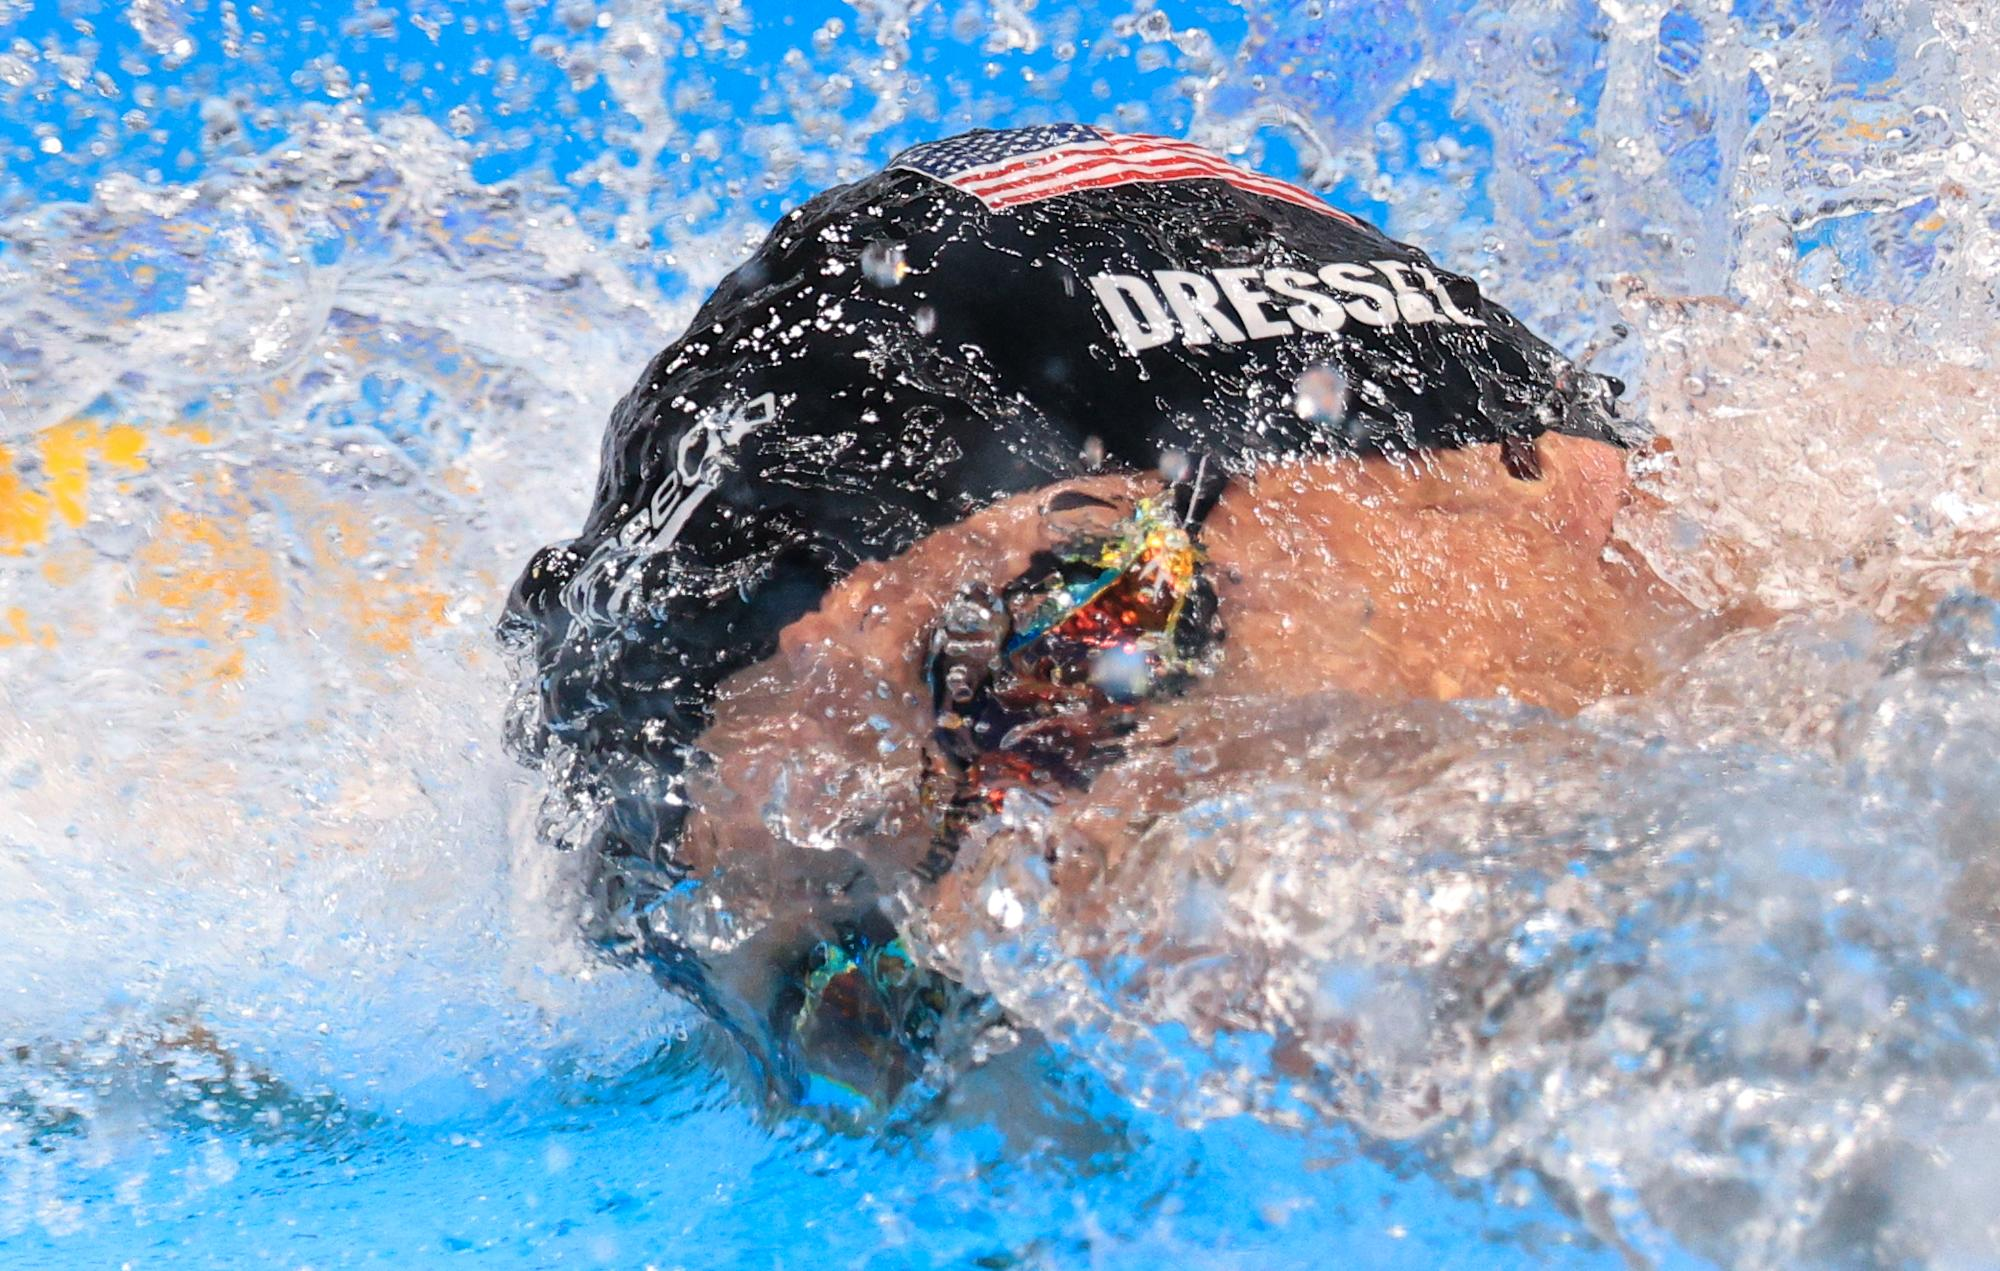 Caeleb Dressel gets his individual Olympic gold